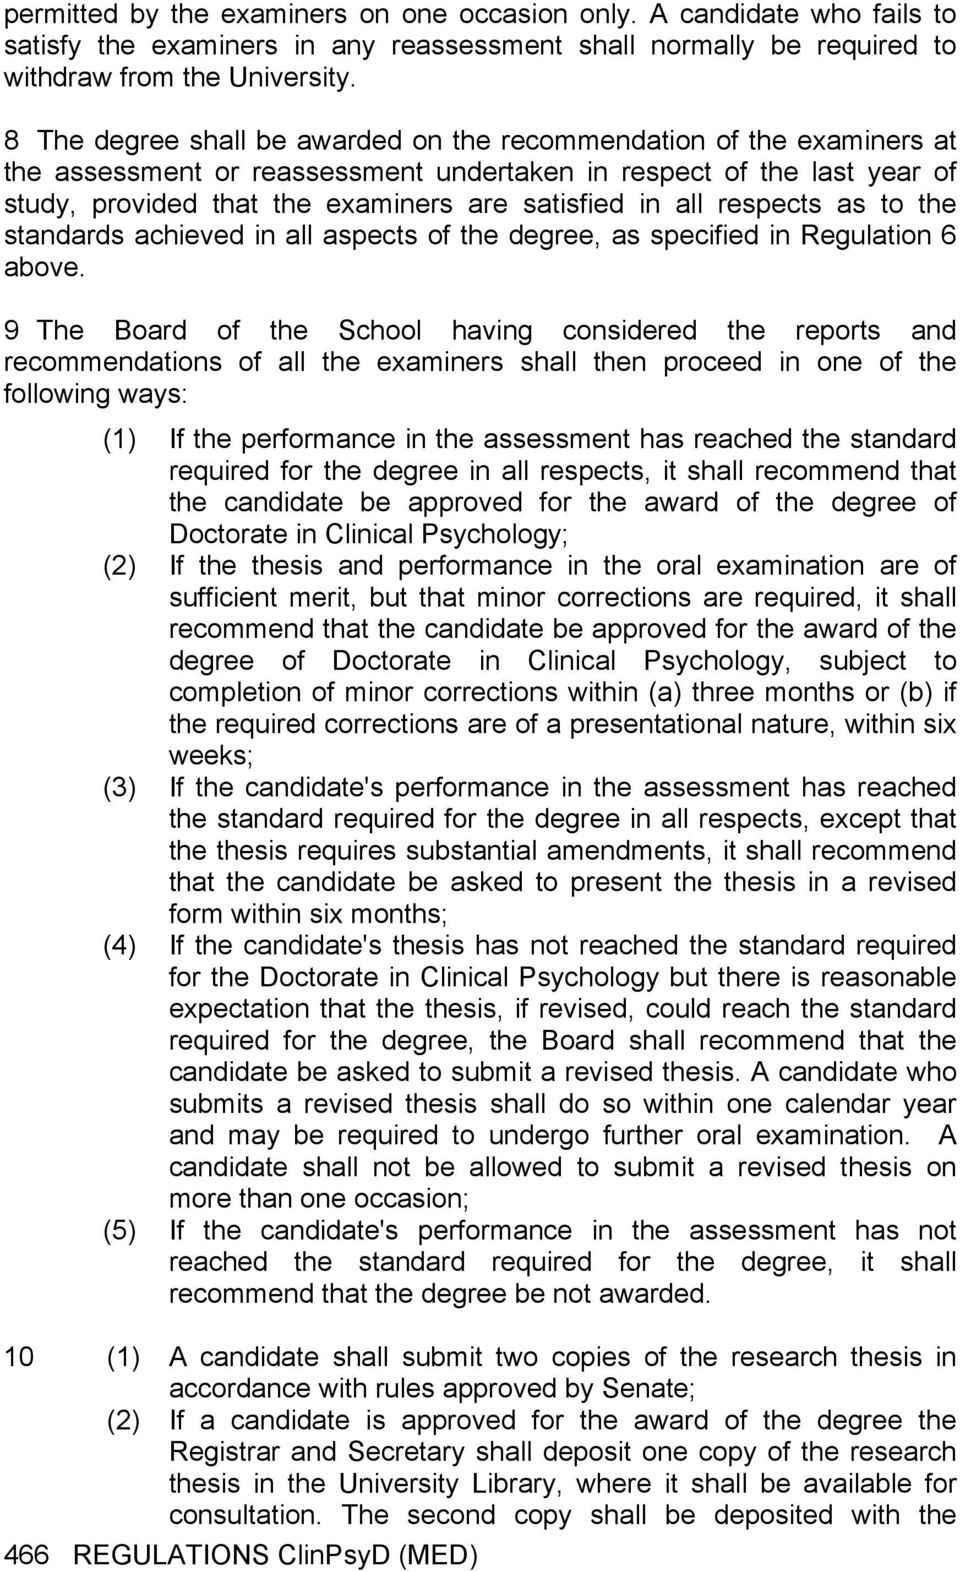 all respects as to the standards achieved in all aspects of the degree, as specified in Regulation 6 above.